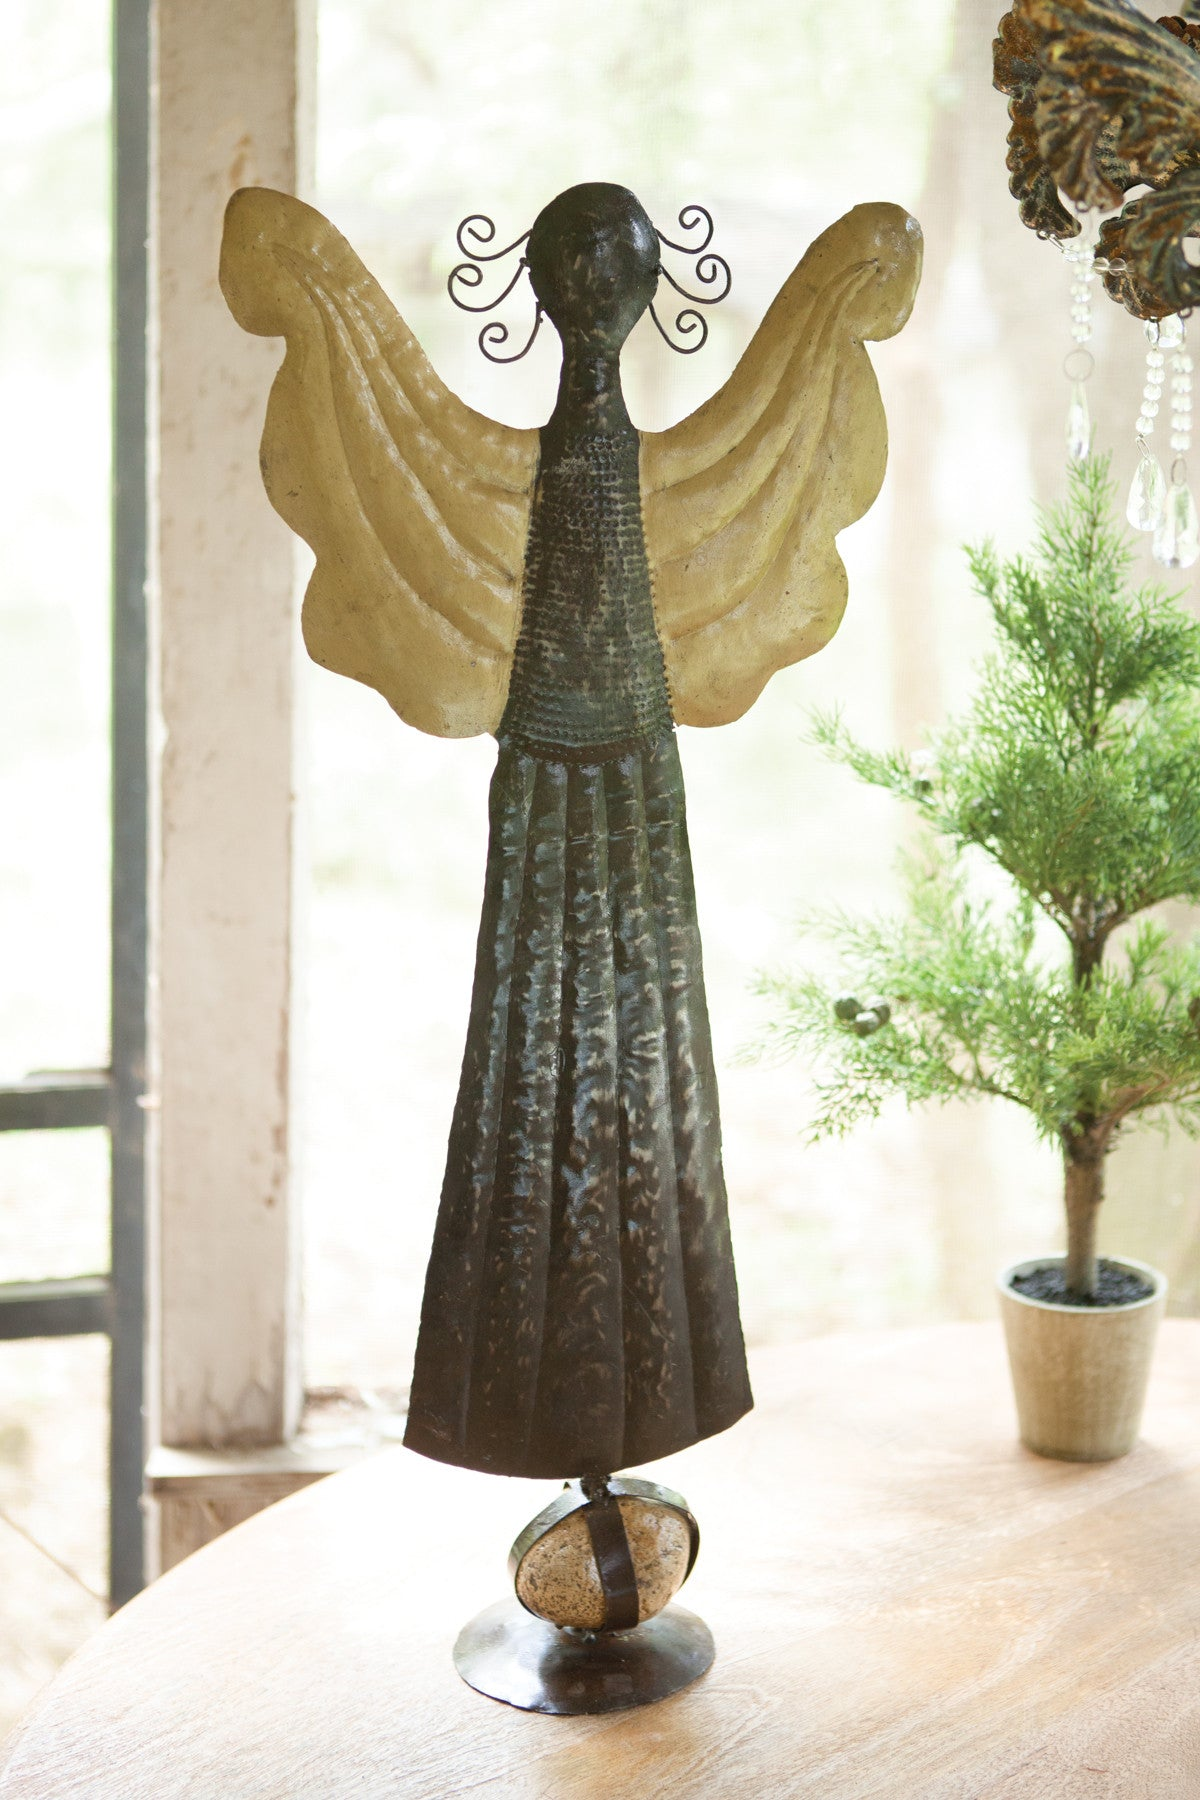 HAND HAMMERED STANDING ANGEL WITH GOLD WINGS & CAGED ROCK BASE